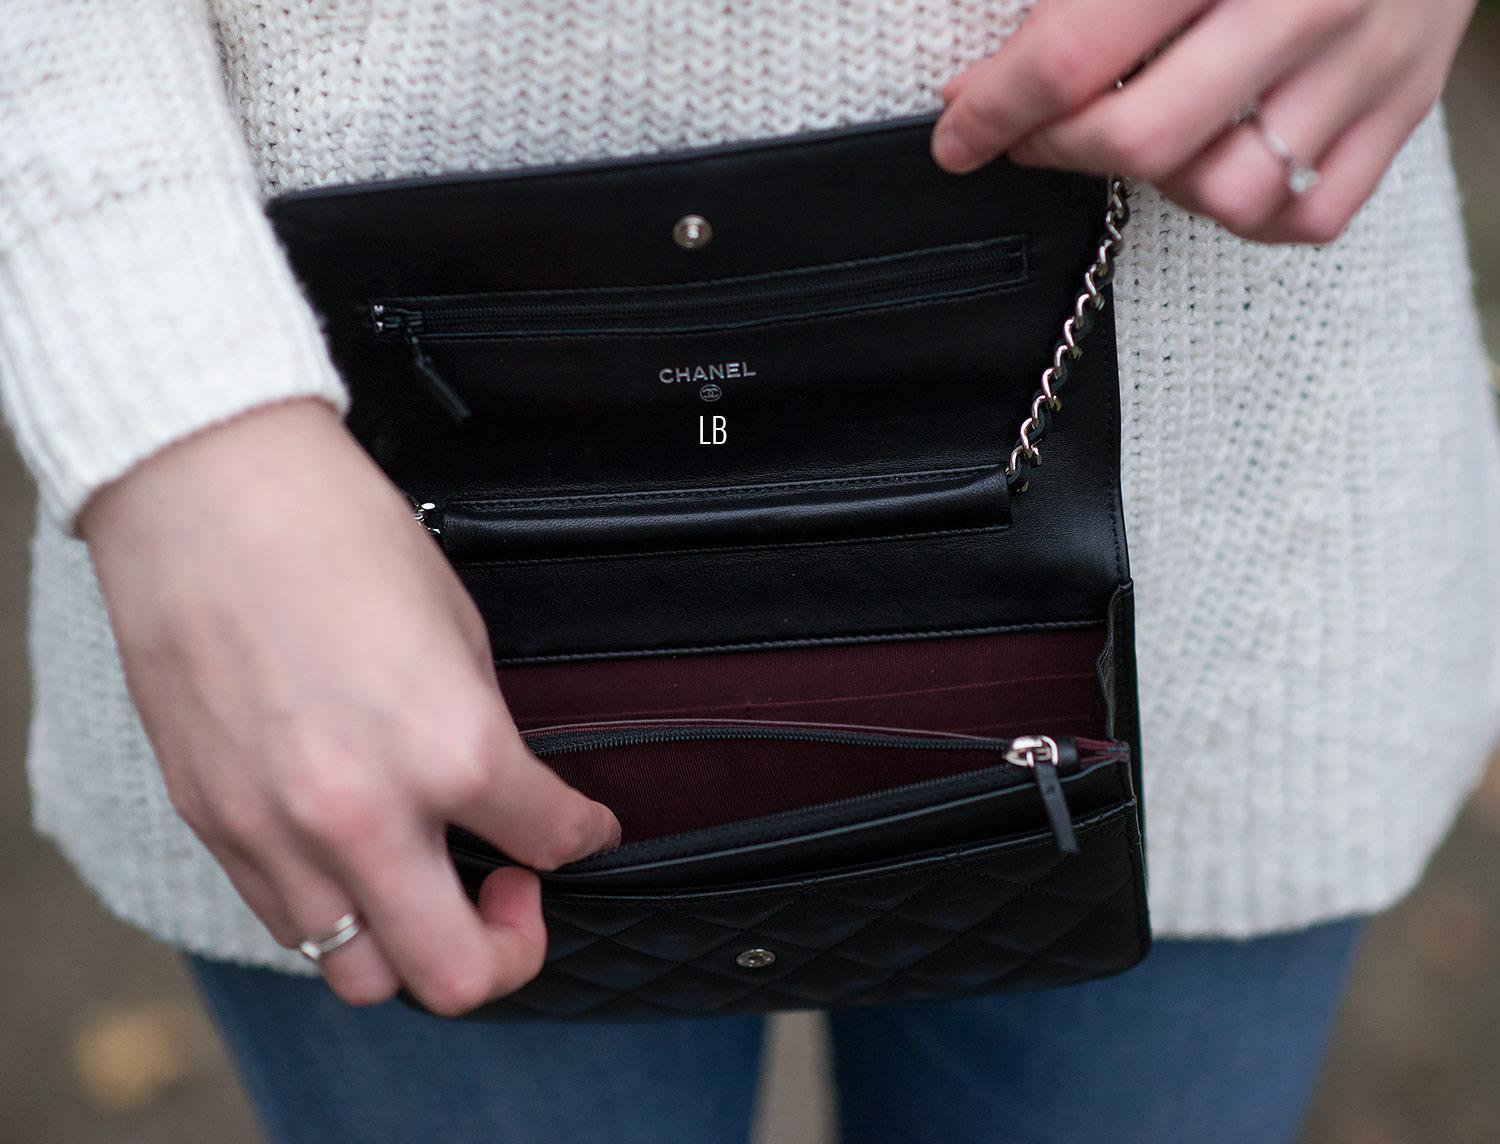 eb08d61c9902 My New Chanel Wallet On Chain 'WOC' Bag In Black | Raindrops of Sapphire